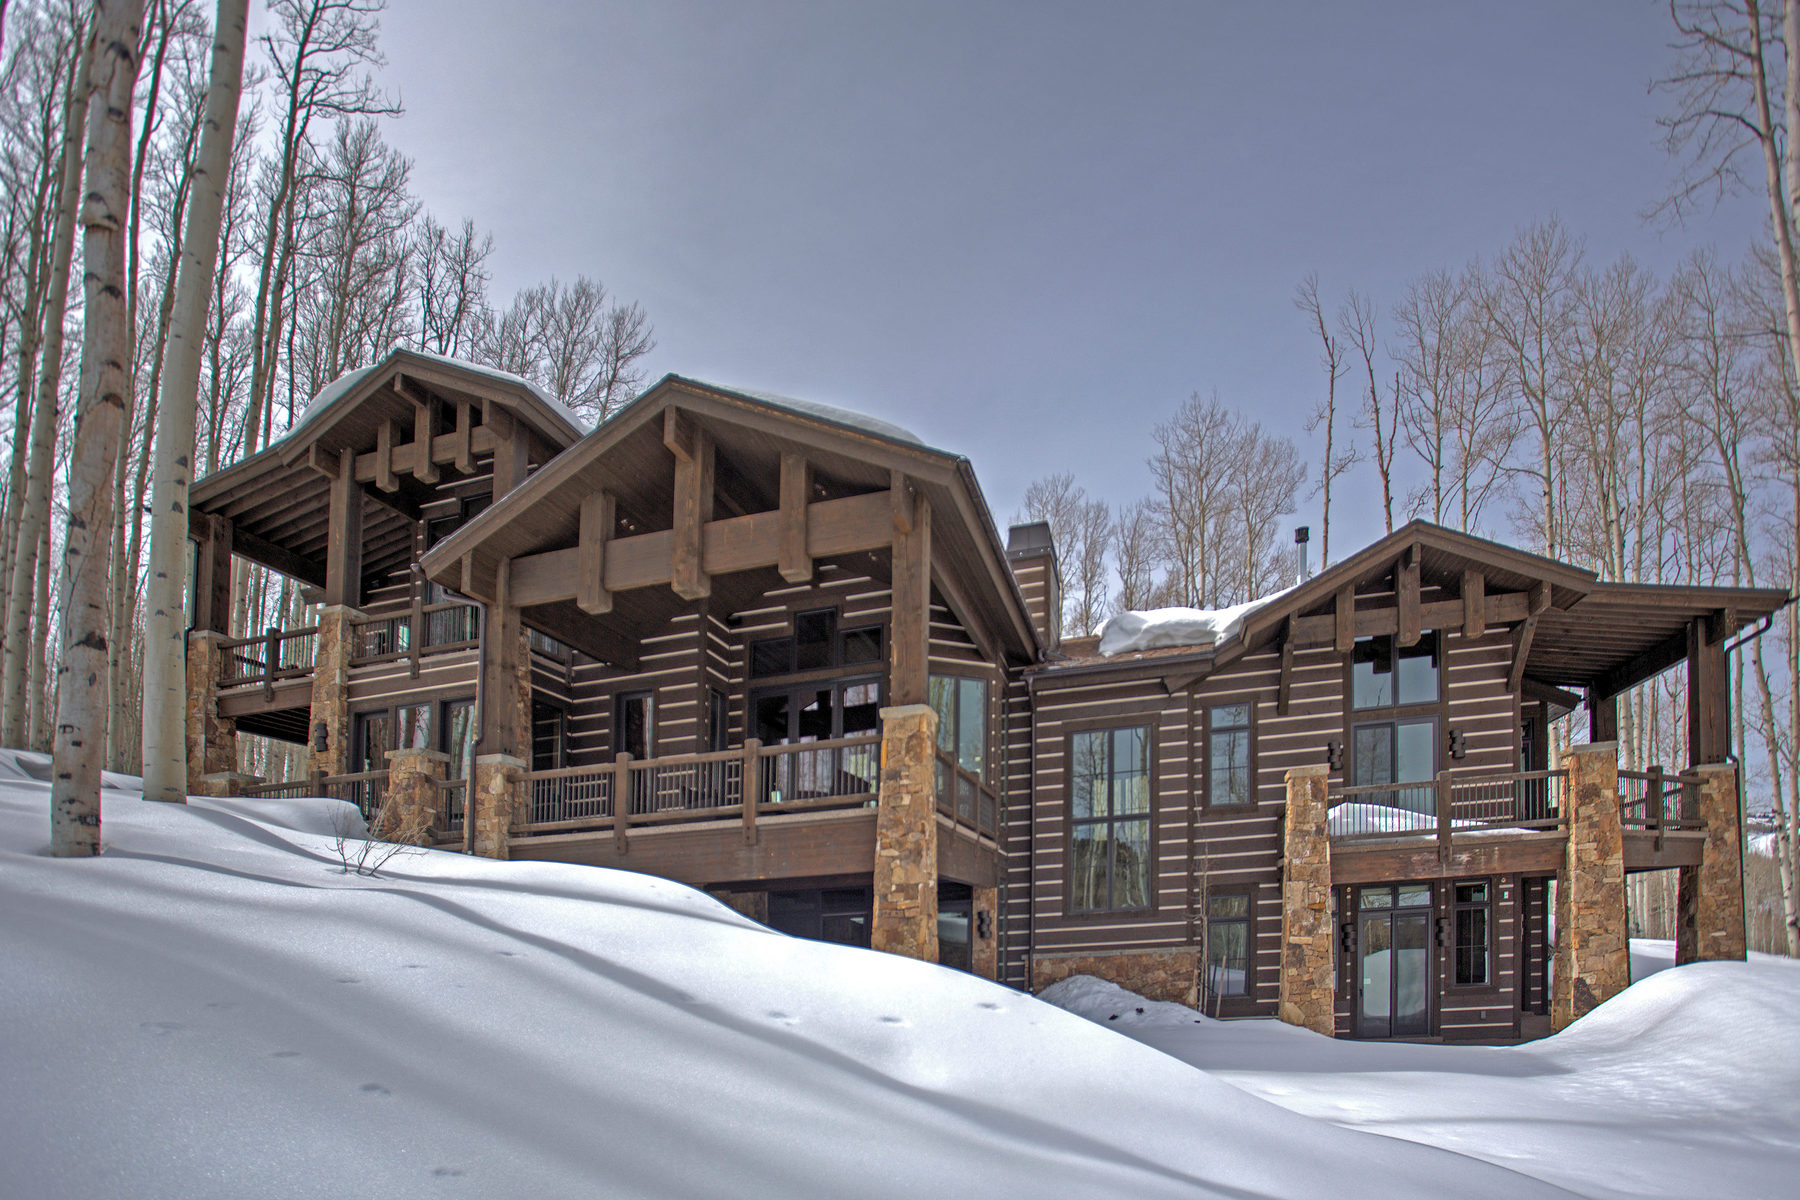 Maison unifamiliale pour l Vente à Incredible Ski-In Ski-Out Colony Home with Mature Trees and Views 177 White Pine Canyon Rd Lot 177 Park City, Utah 84098 États-Unis